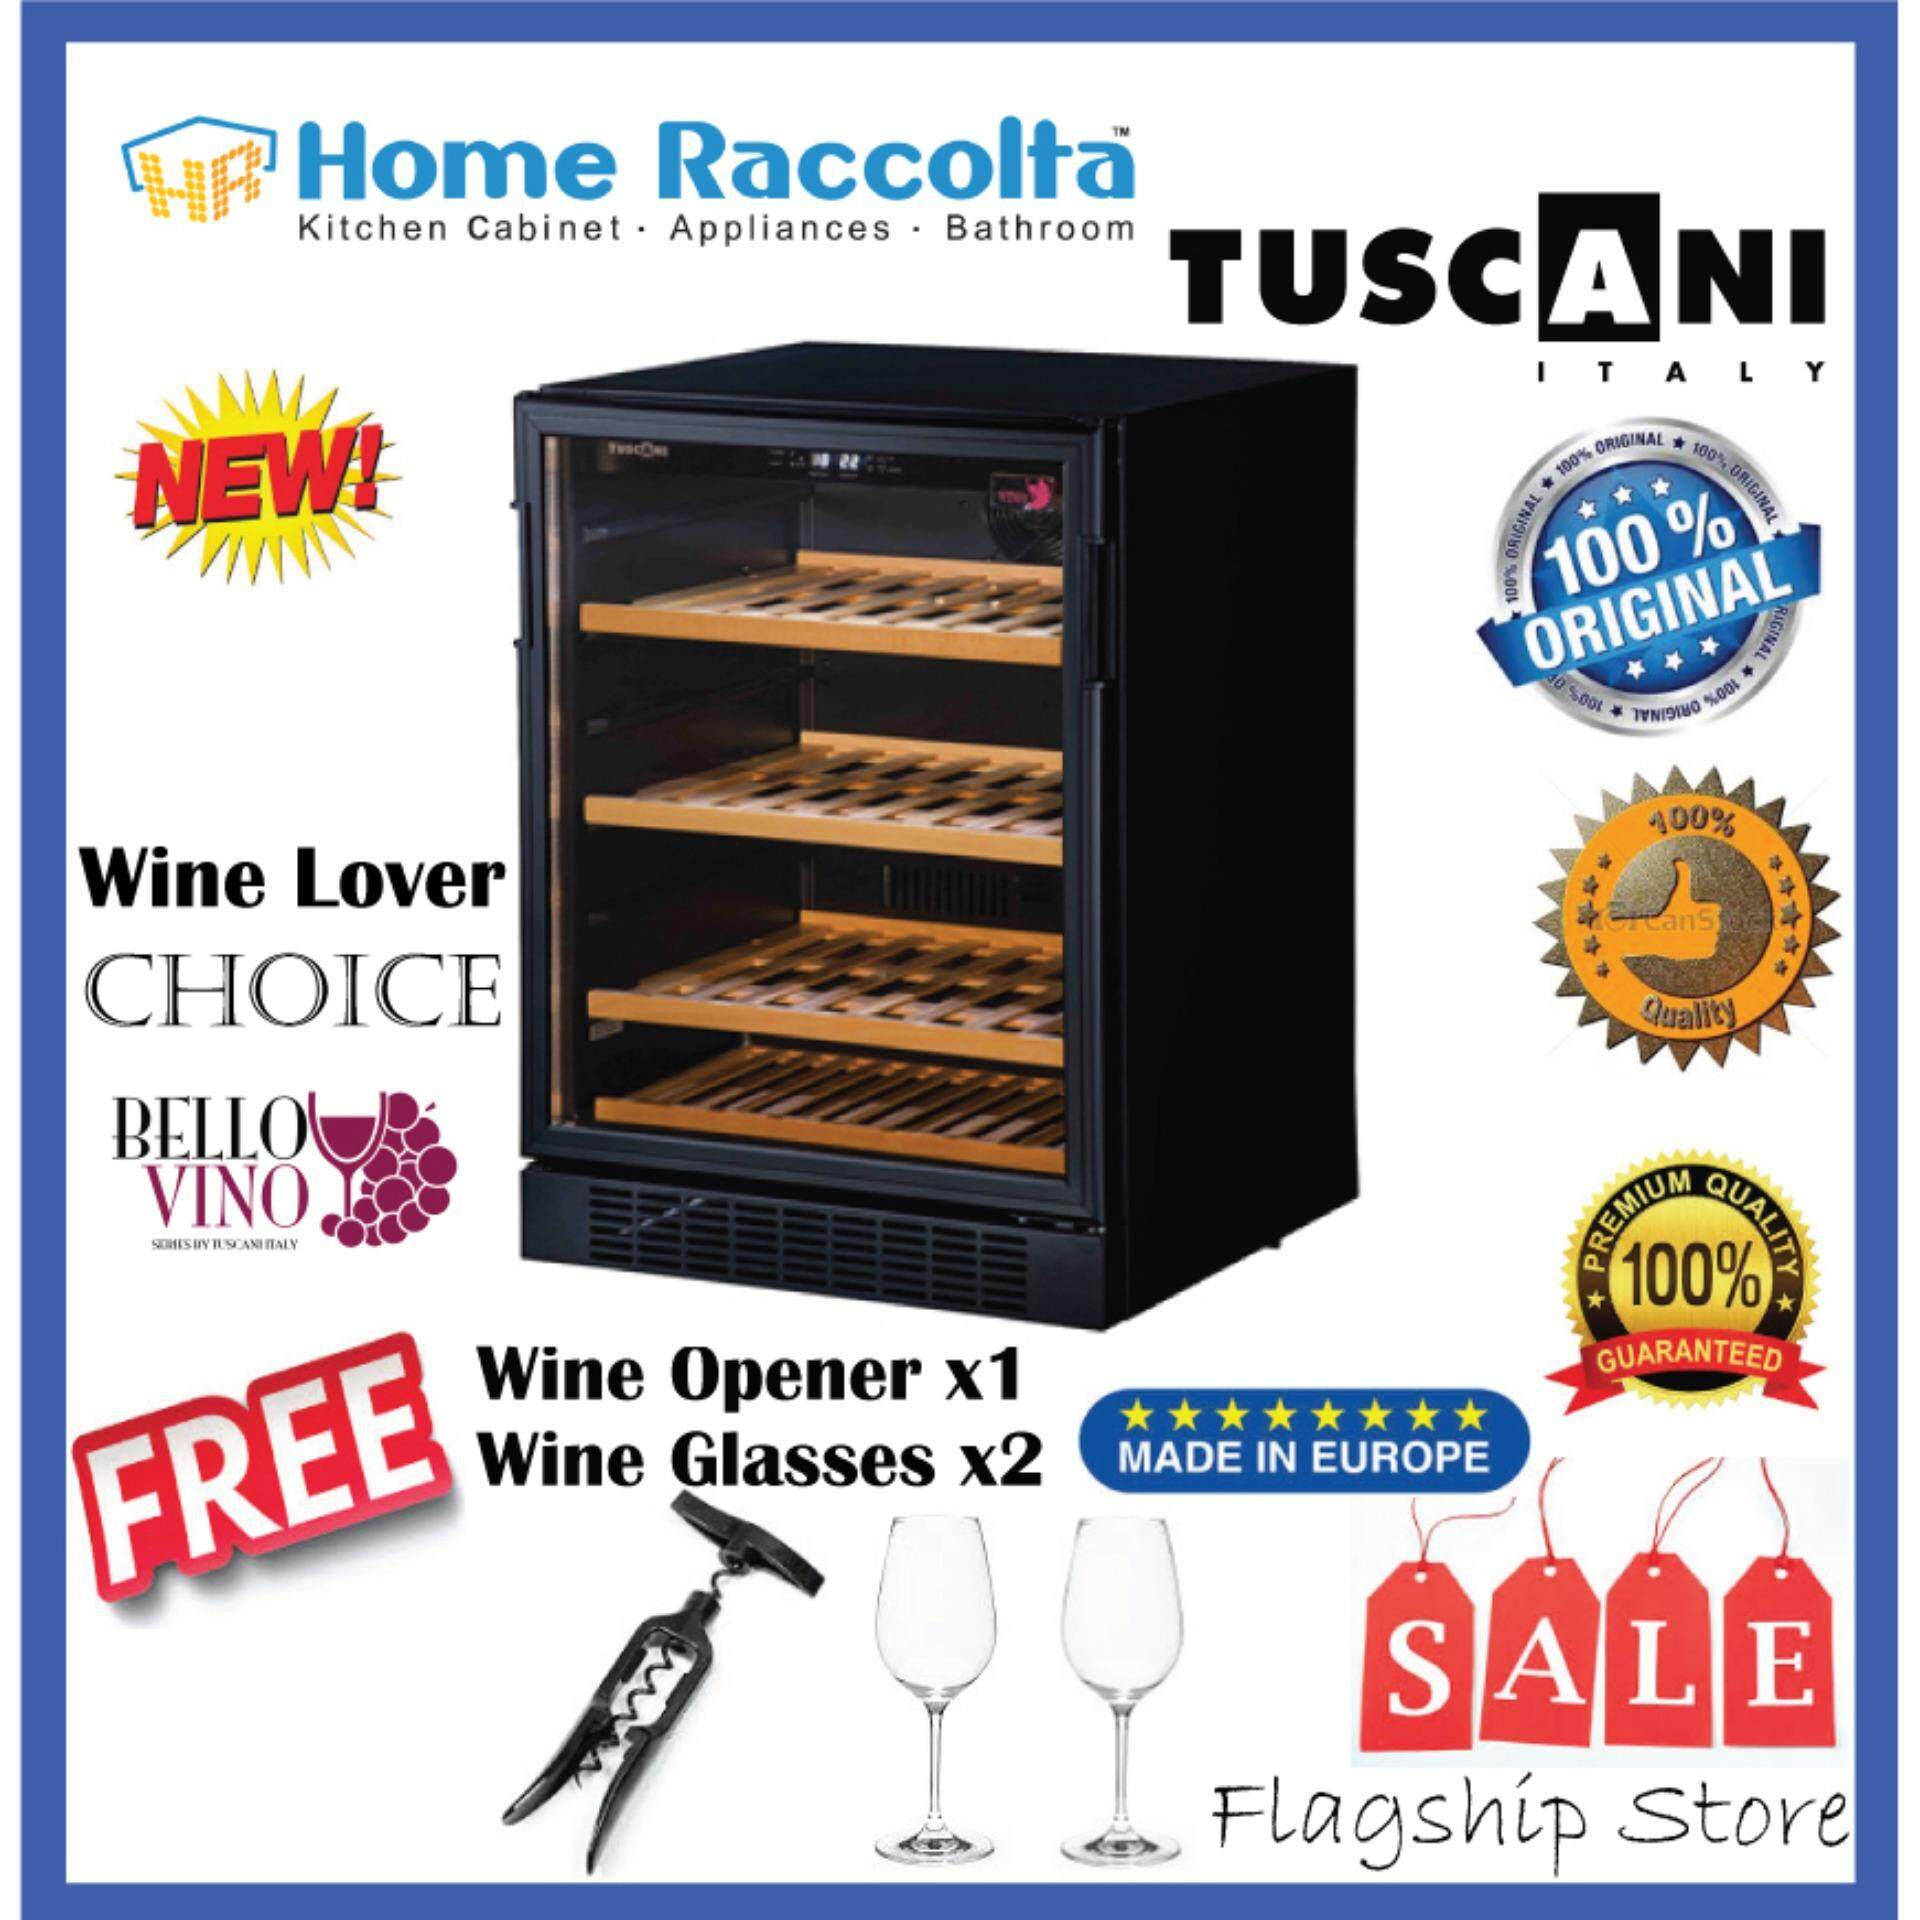 Tuscani Wine Cellar Bellona45 Wine Chiller Tsc Bellona 45 (42bottles) By Home Raccolta.